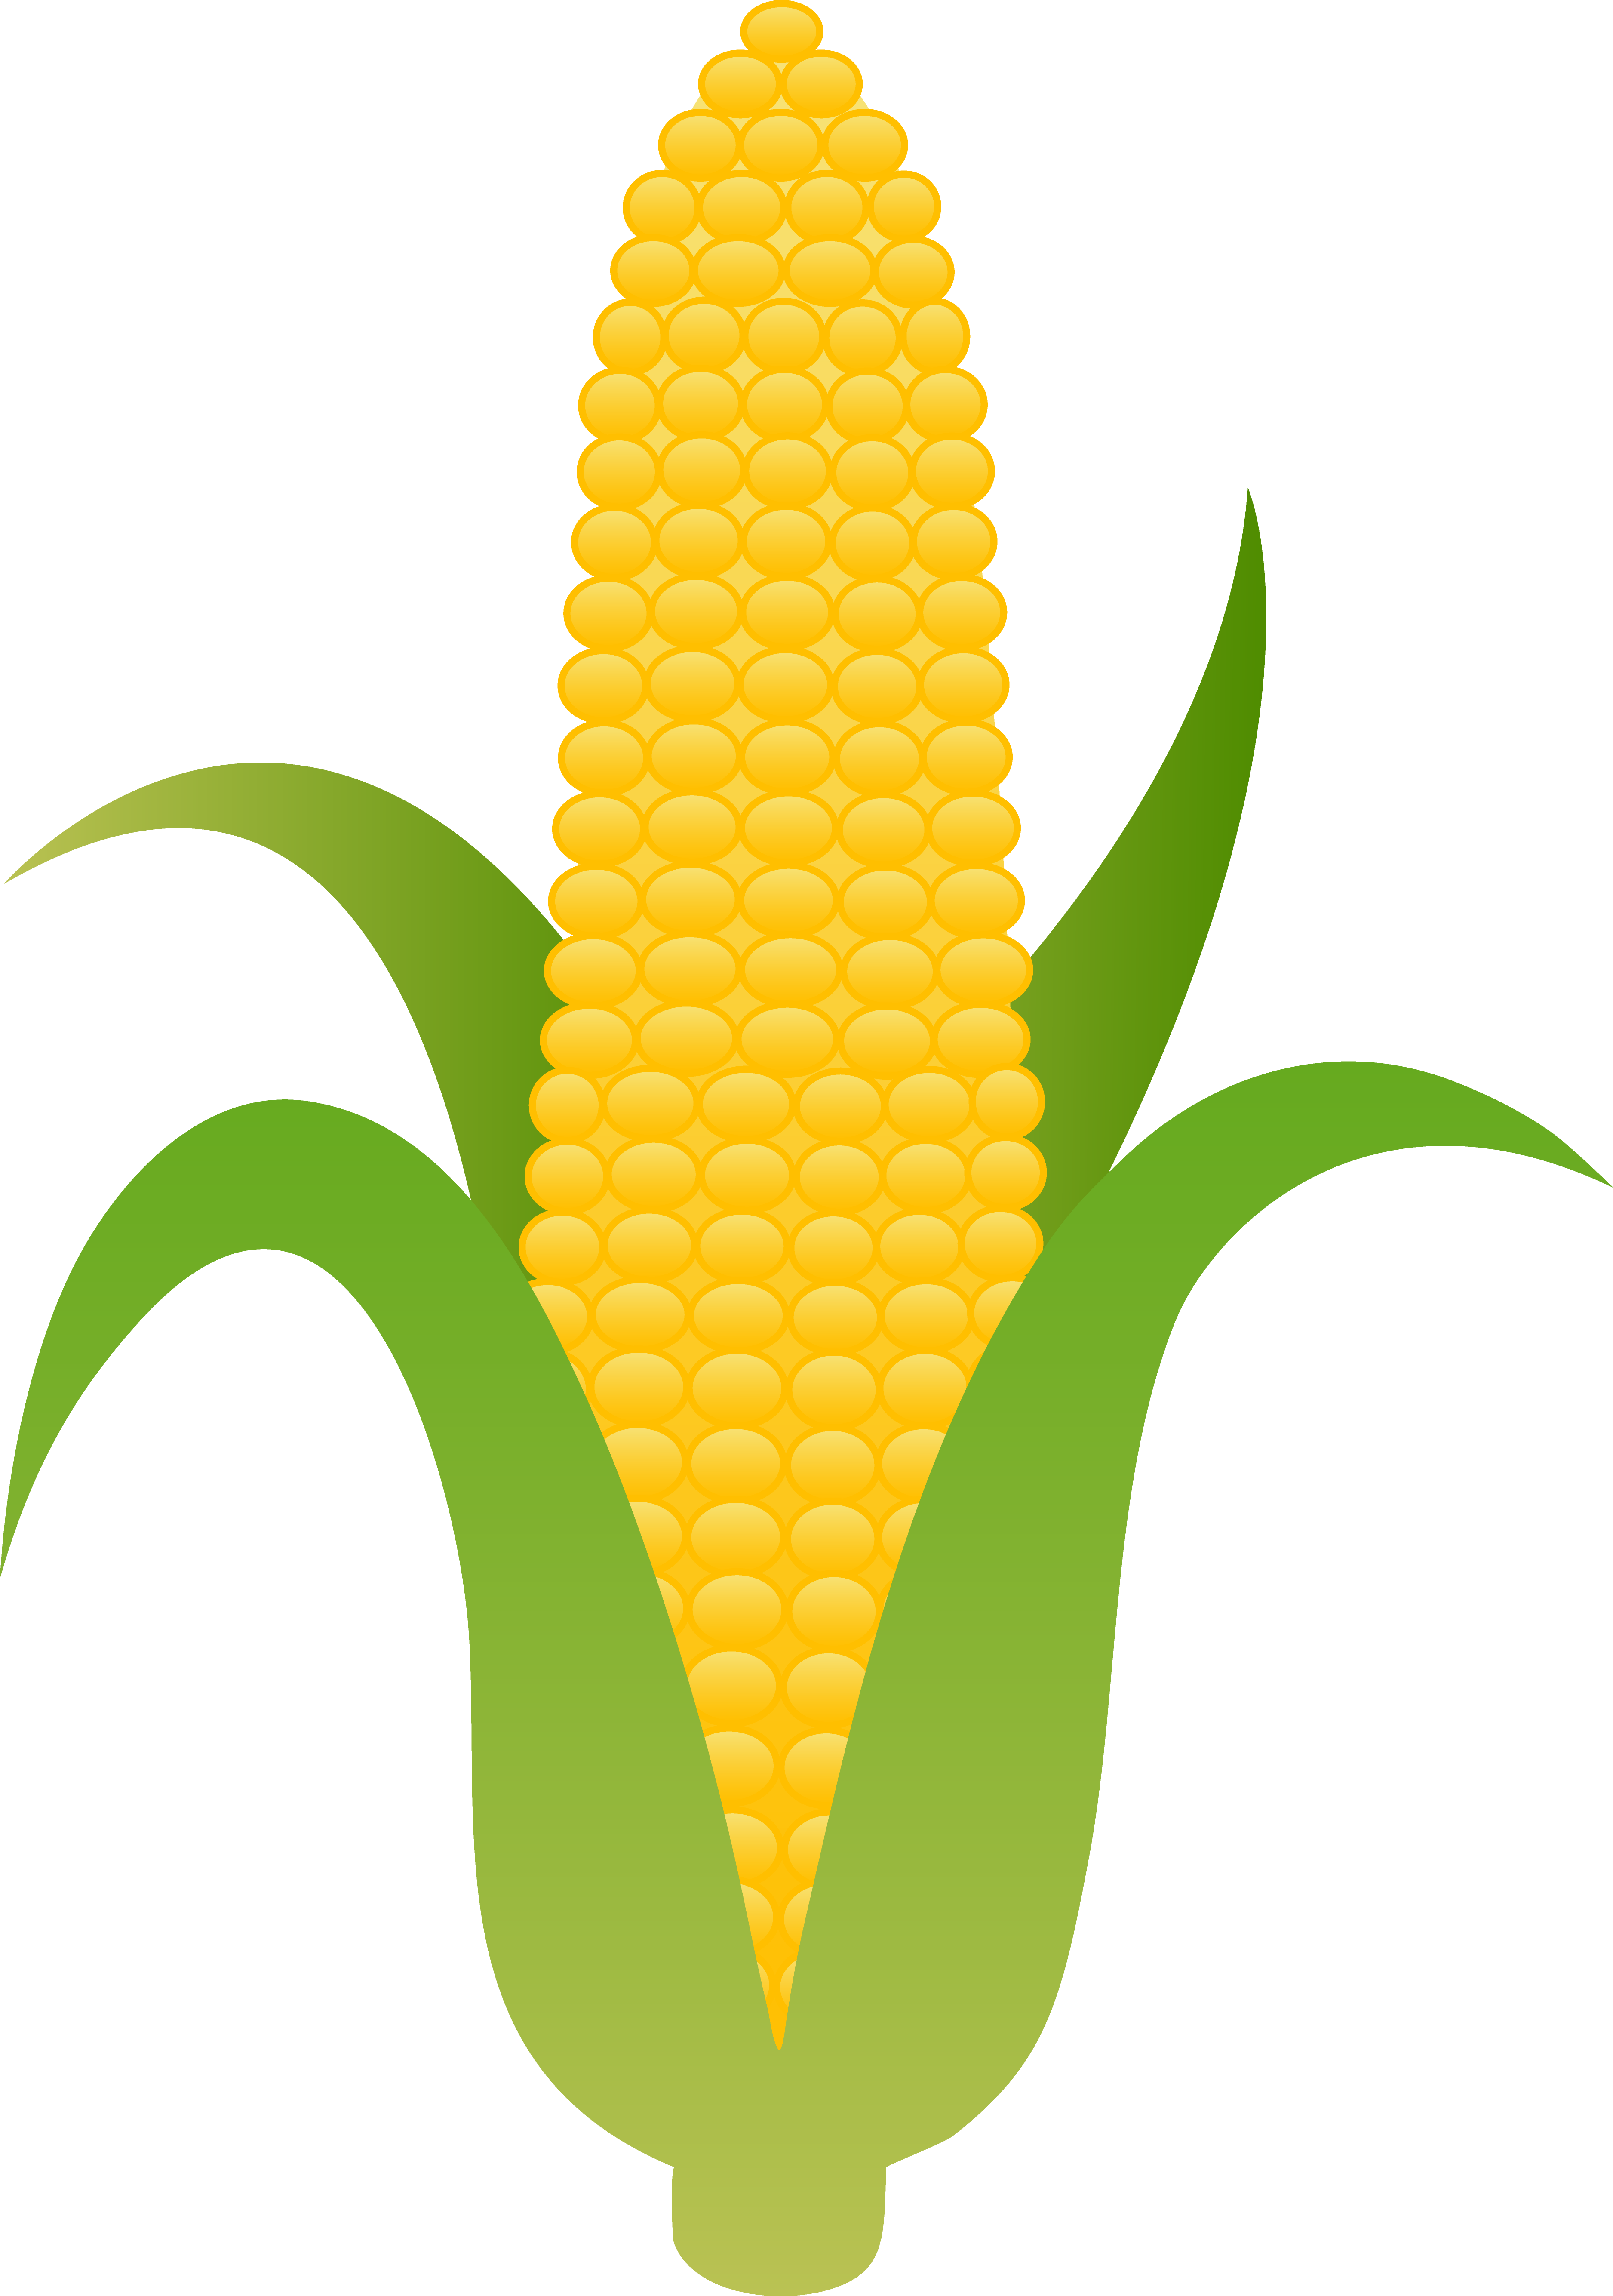 Images For Clip Art Corn On ..-Images For Clip Art Corn On ..-2